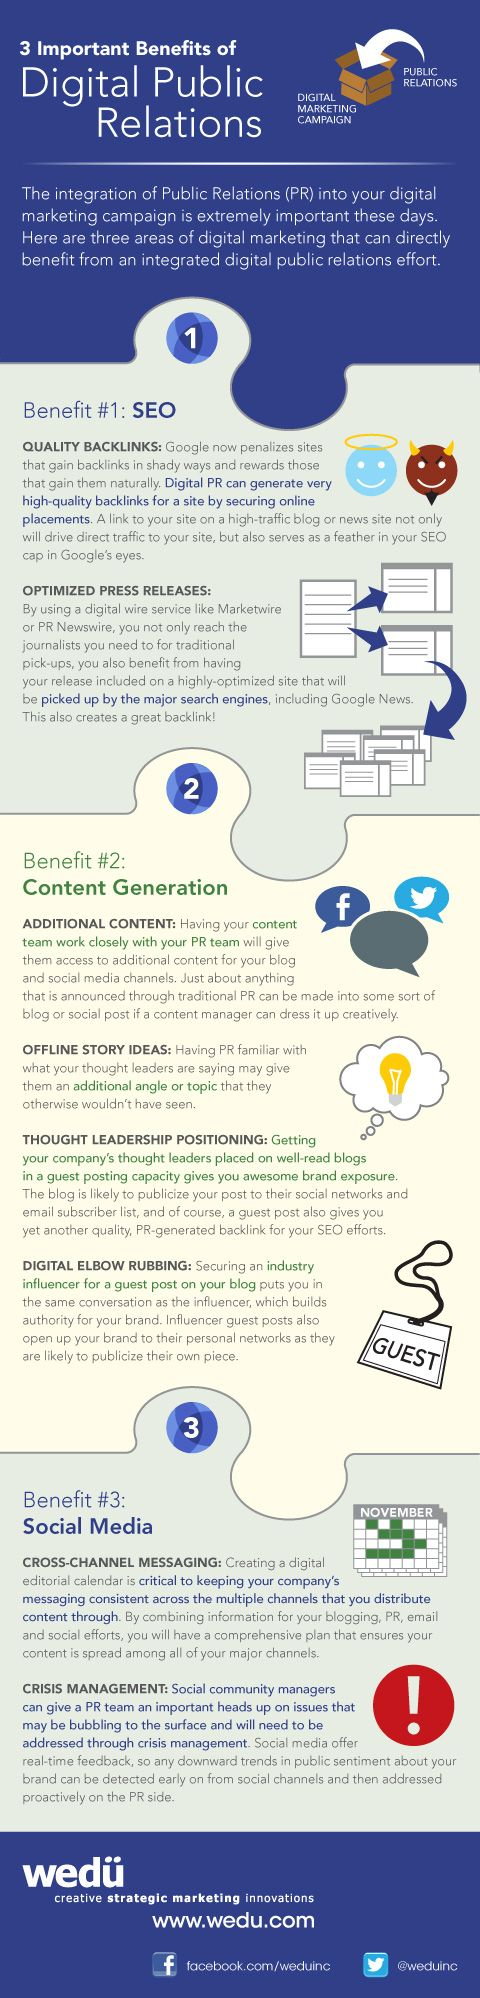 3 important benefits of digital public relations [INFOGRAPHIC]